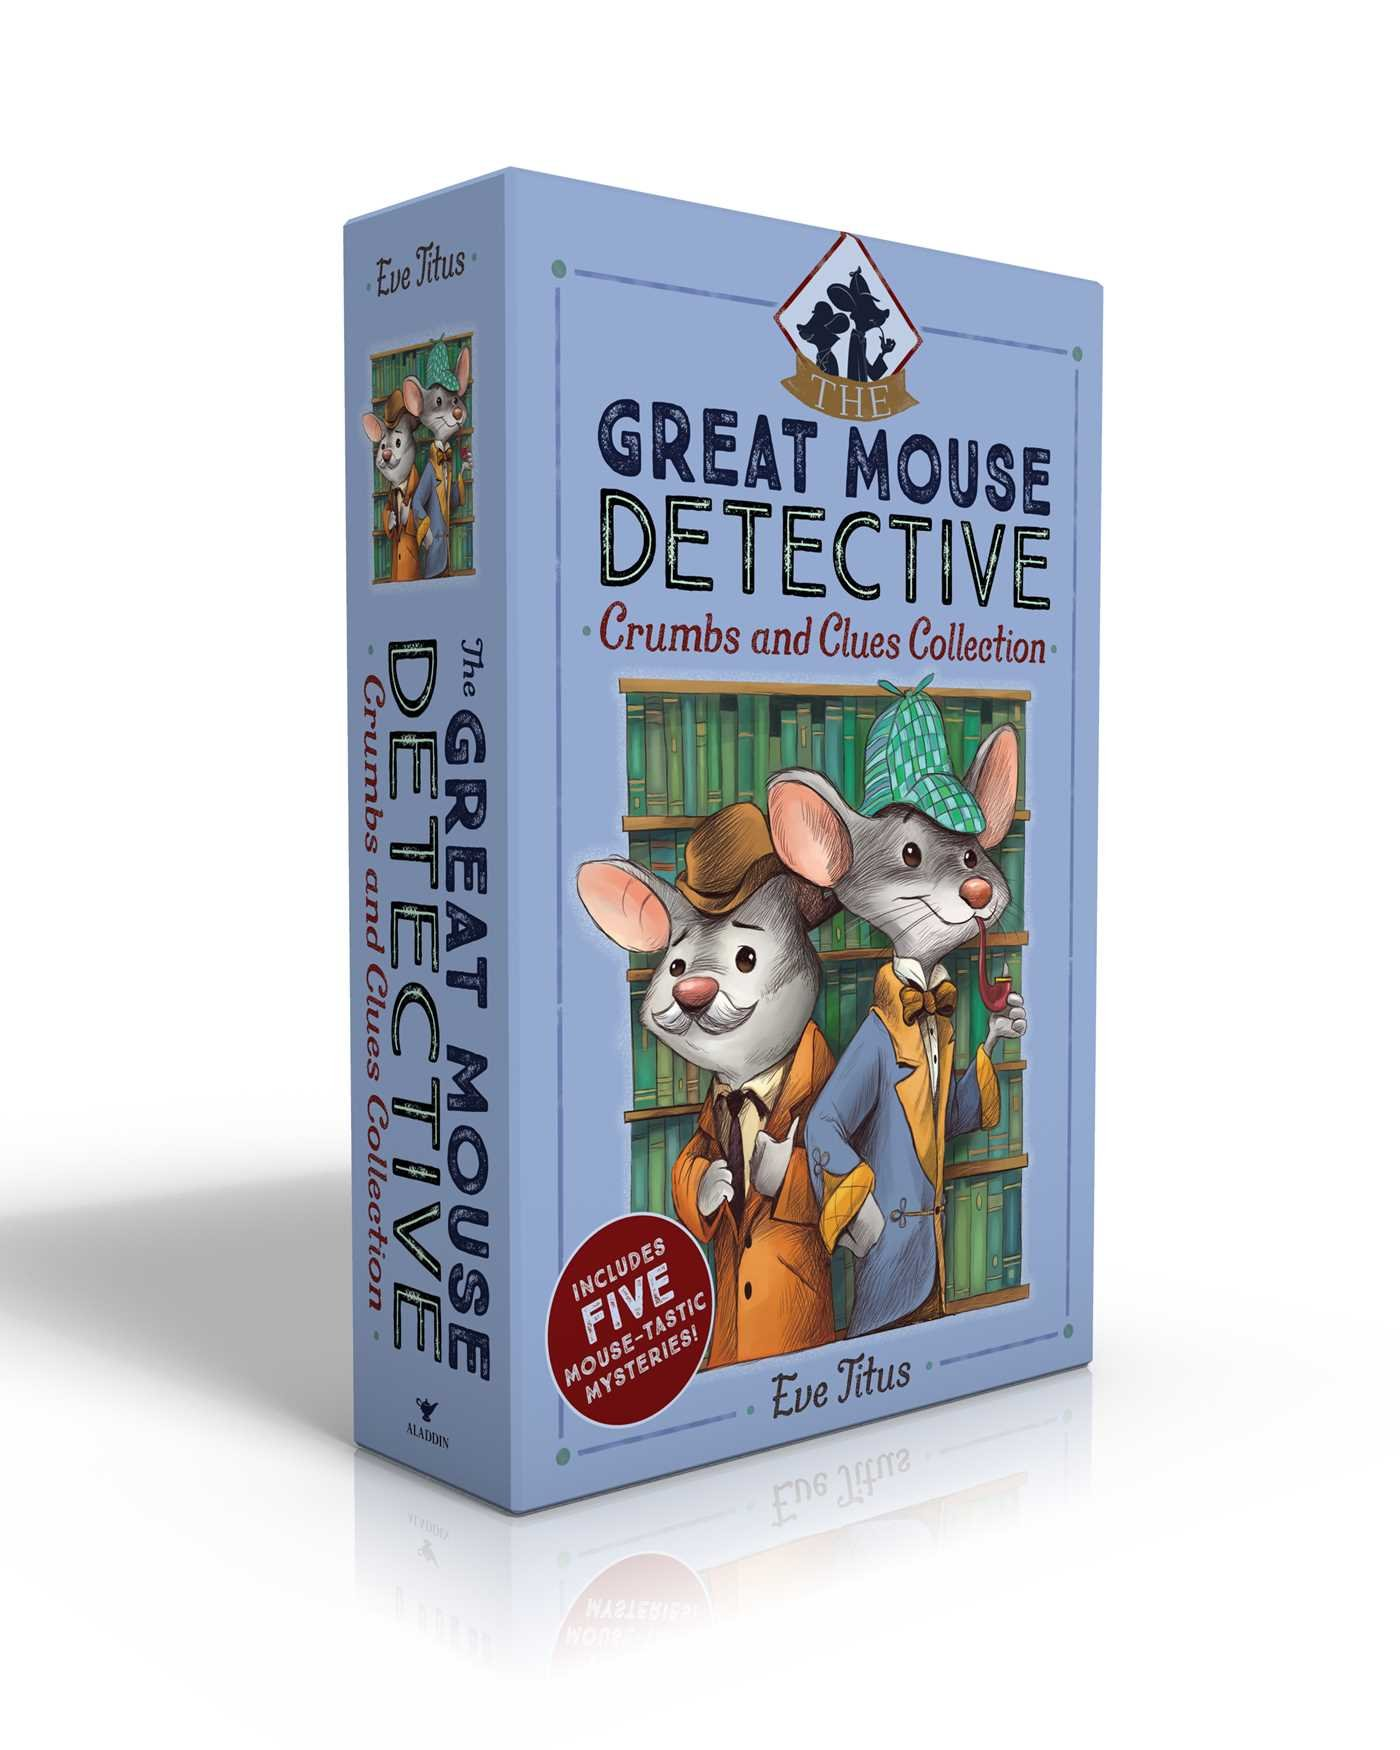 The Great Mouse Detective Crumbs and Clues Collection: Basil of Baker Street; Basil and the Cave of Cats; Basil in Mexico; Basil in the Wild West; Basil and the Lost Colony